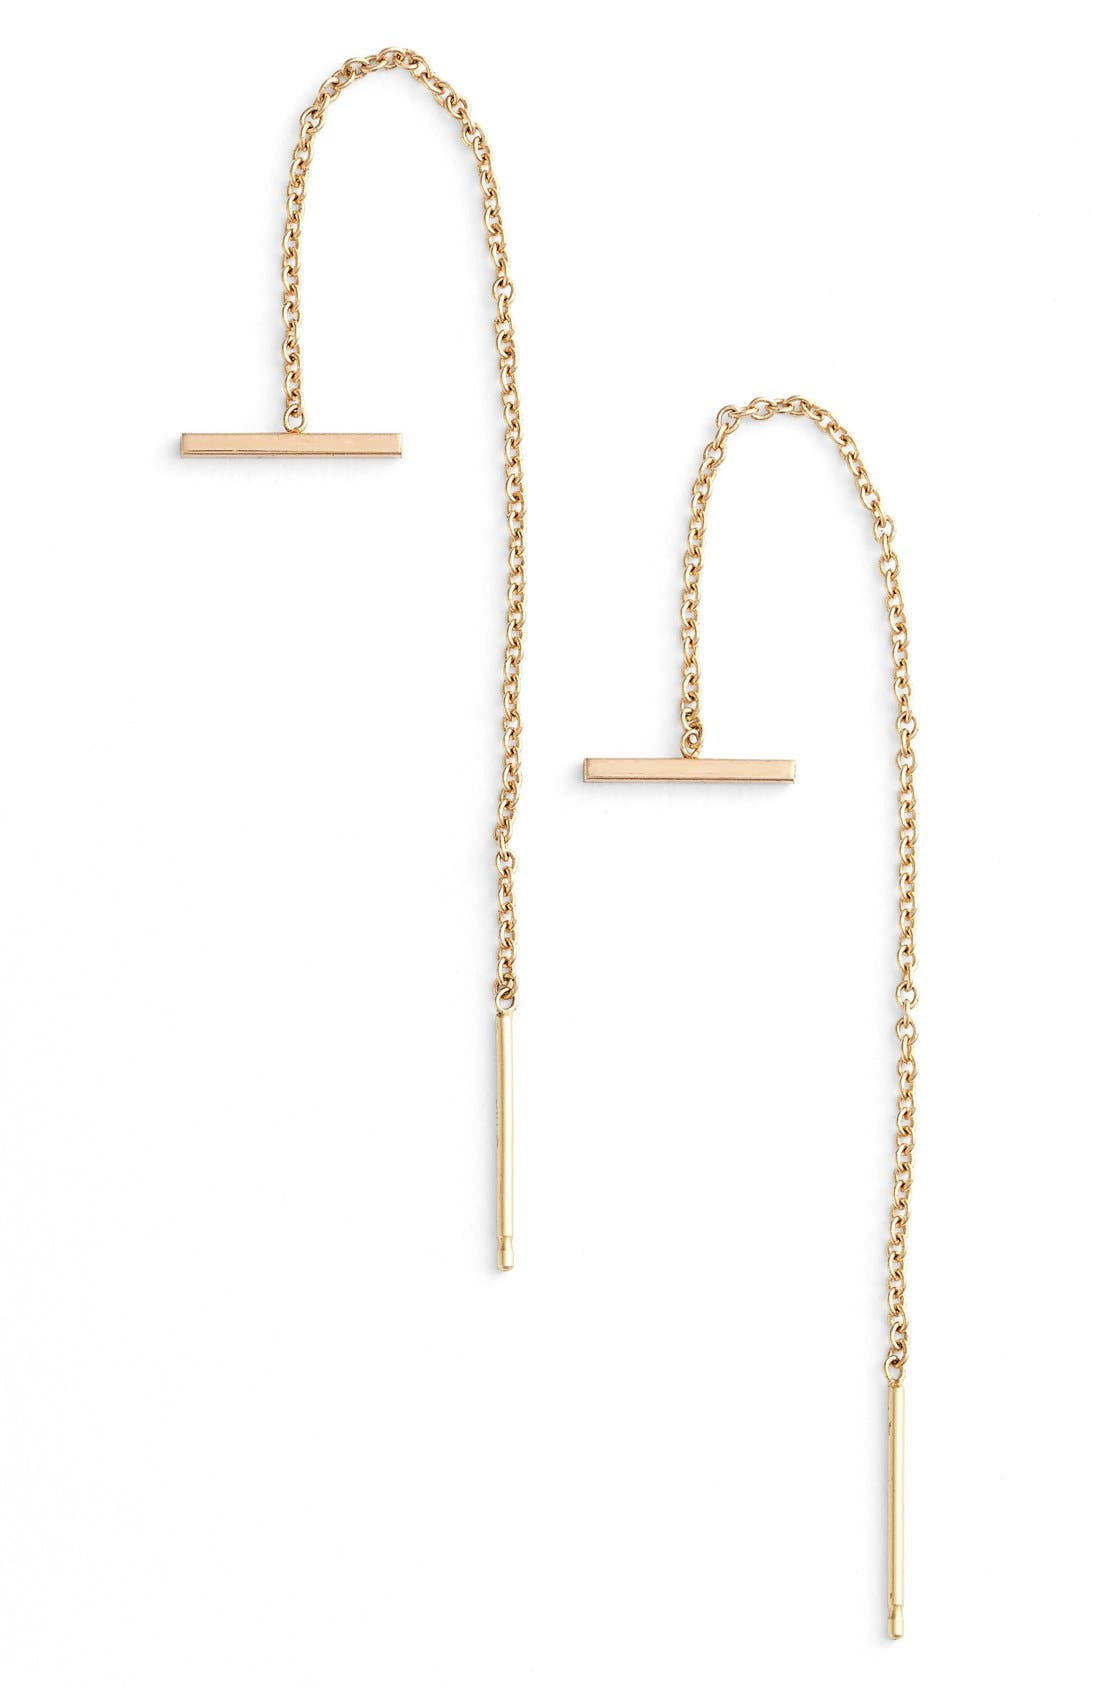 ZOË CHICCO,                             Bar Threader Earrings,                             Main thumbnail 1, color,                             YELLOW GOLD